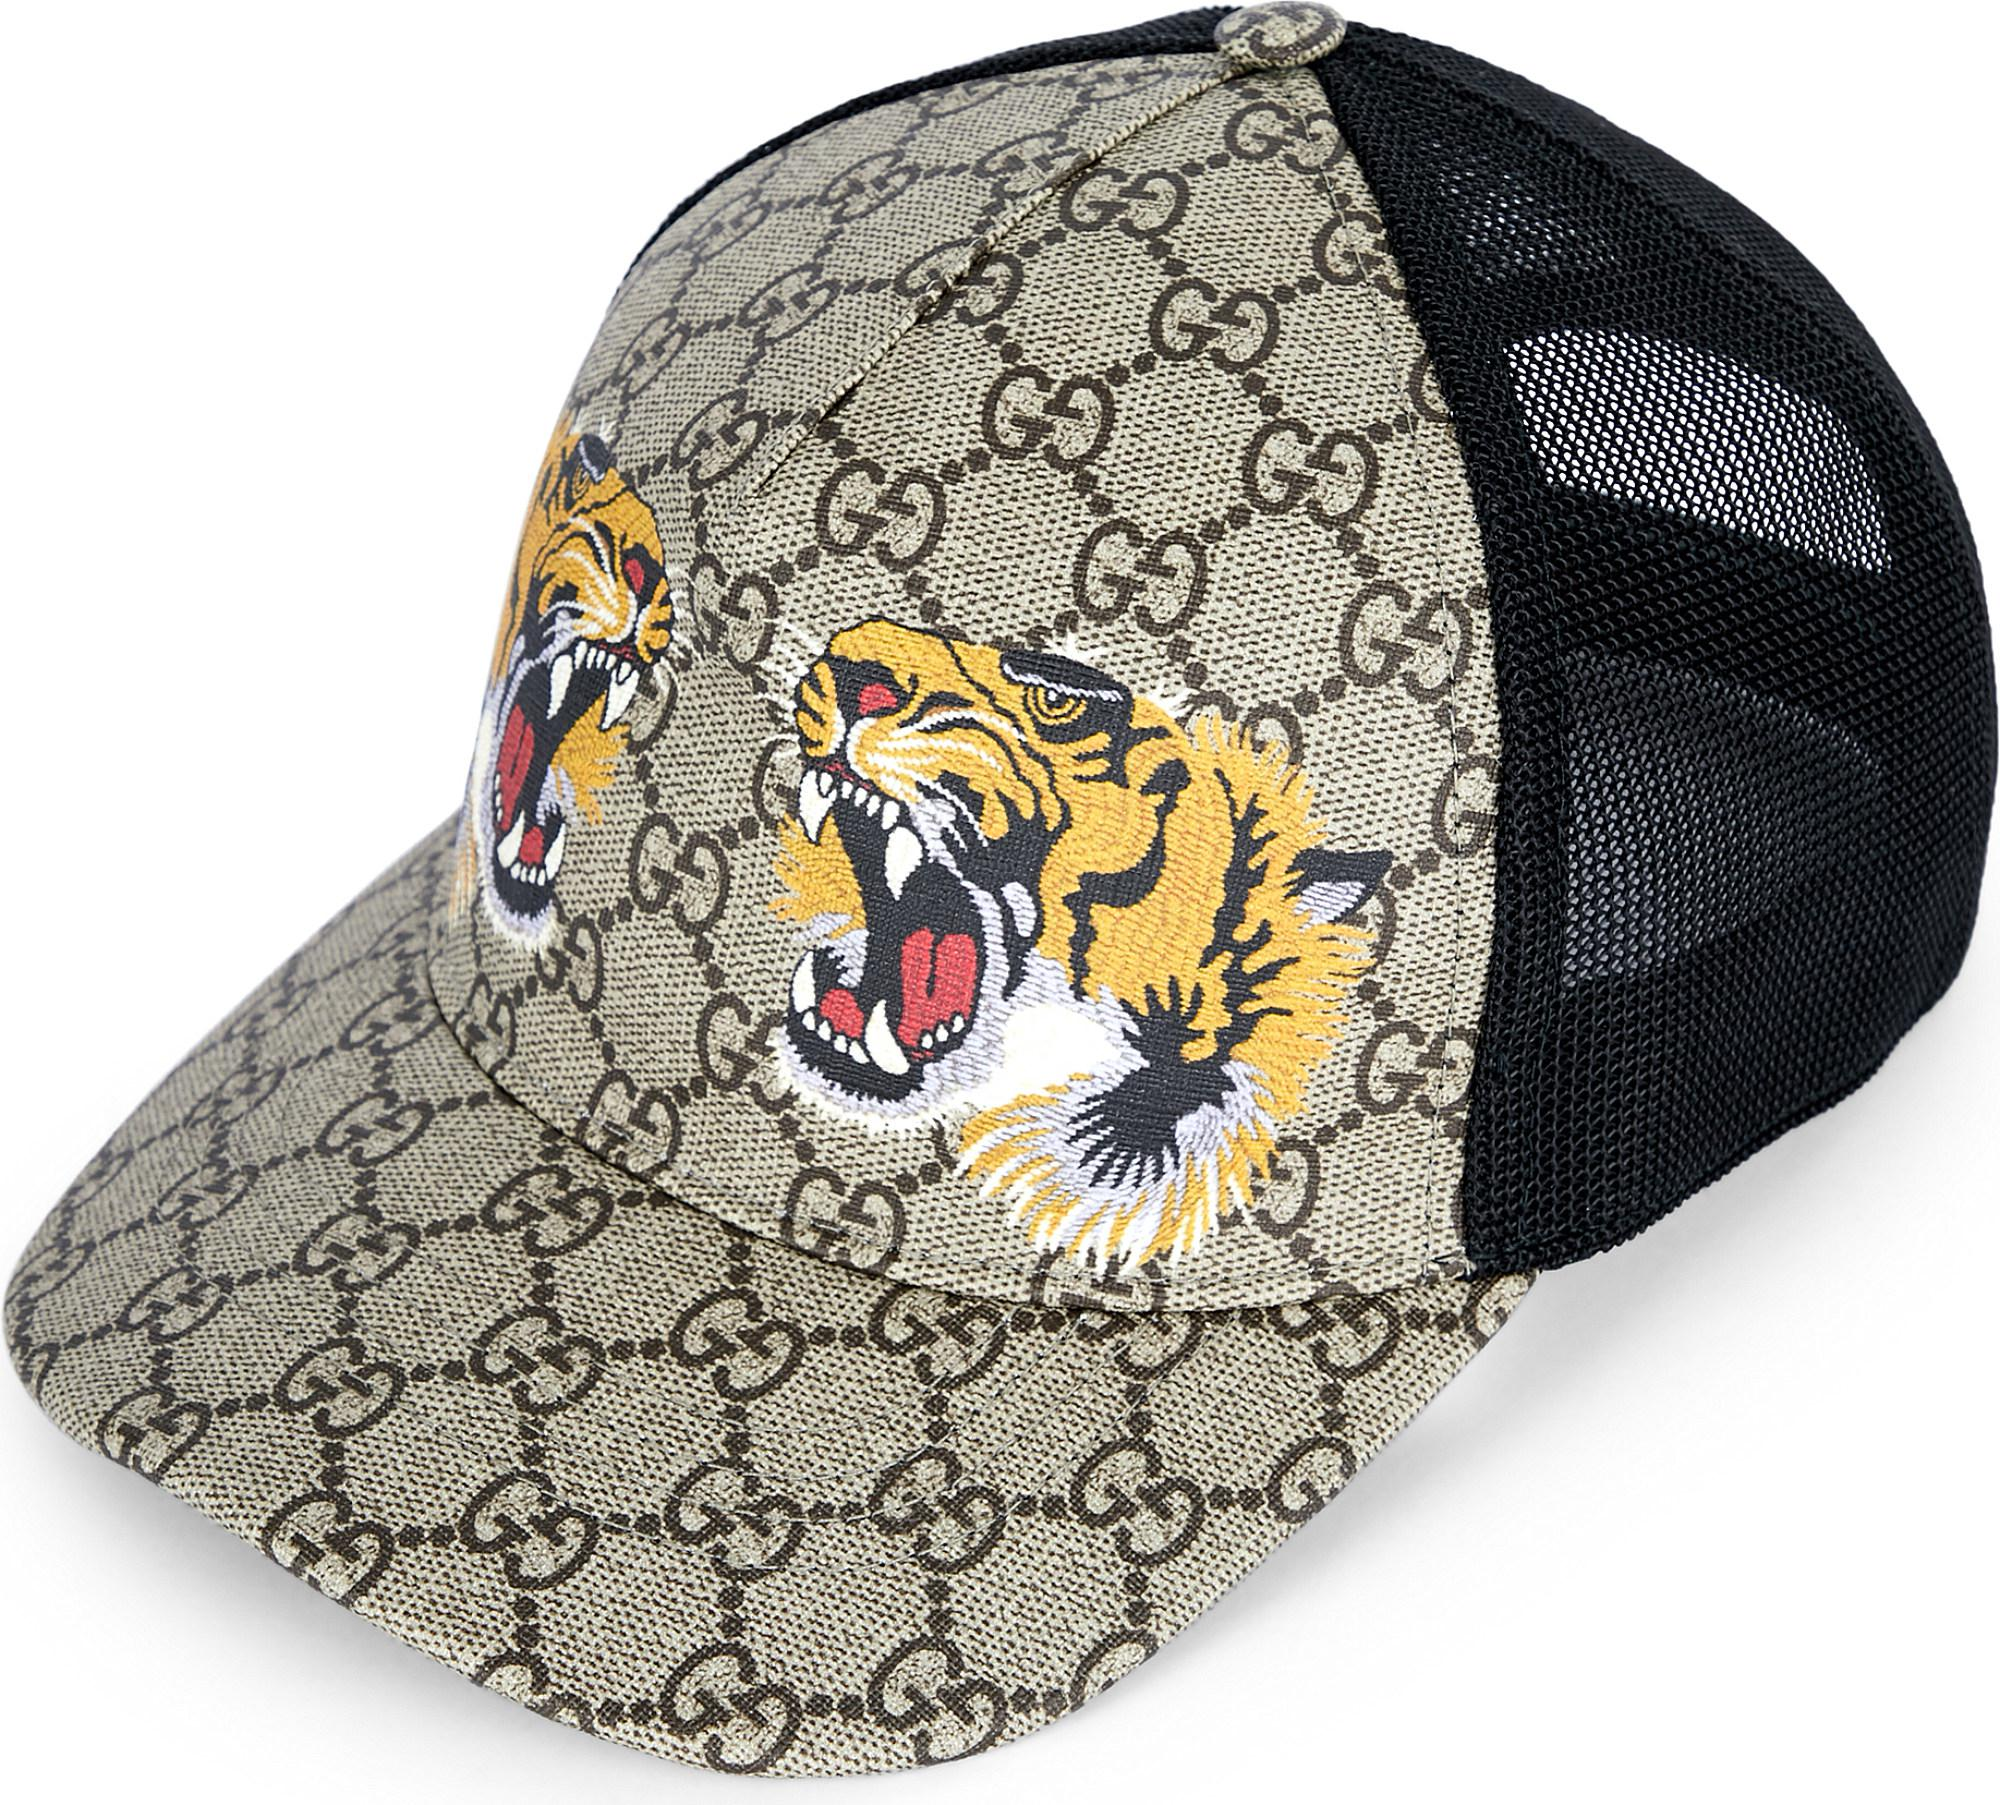 b57d4c8be185 Lyst - Gucci Twin Tigers Canvas Baseball Cap in Natural for Men